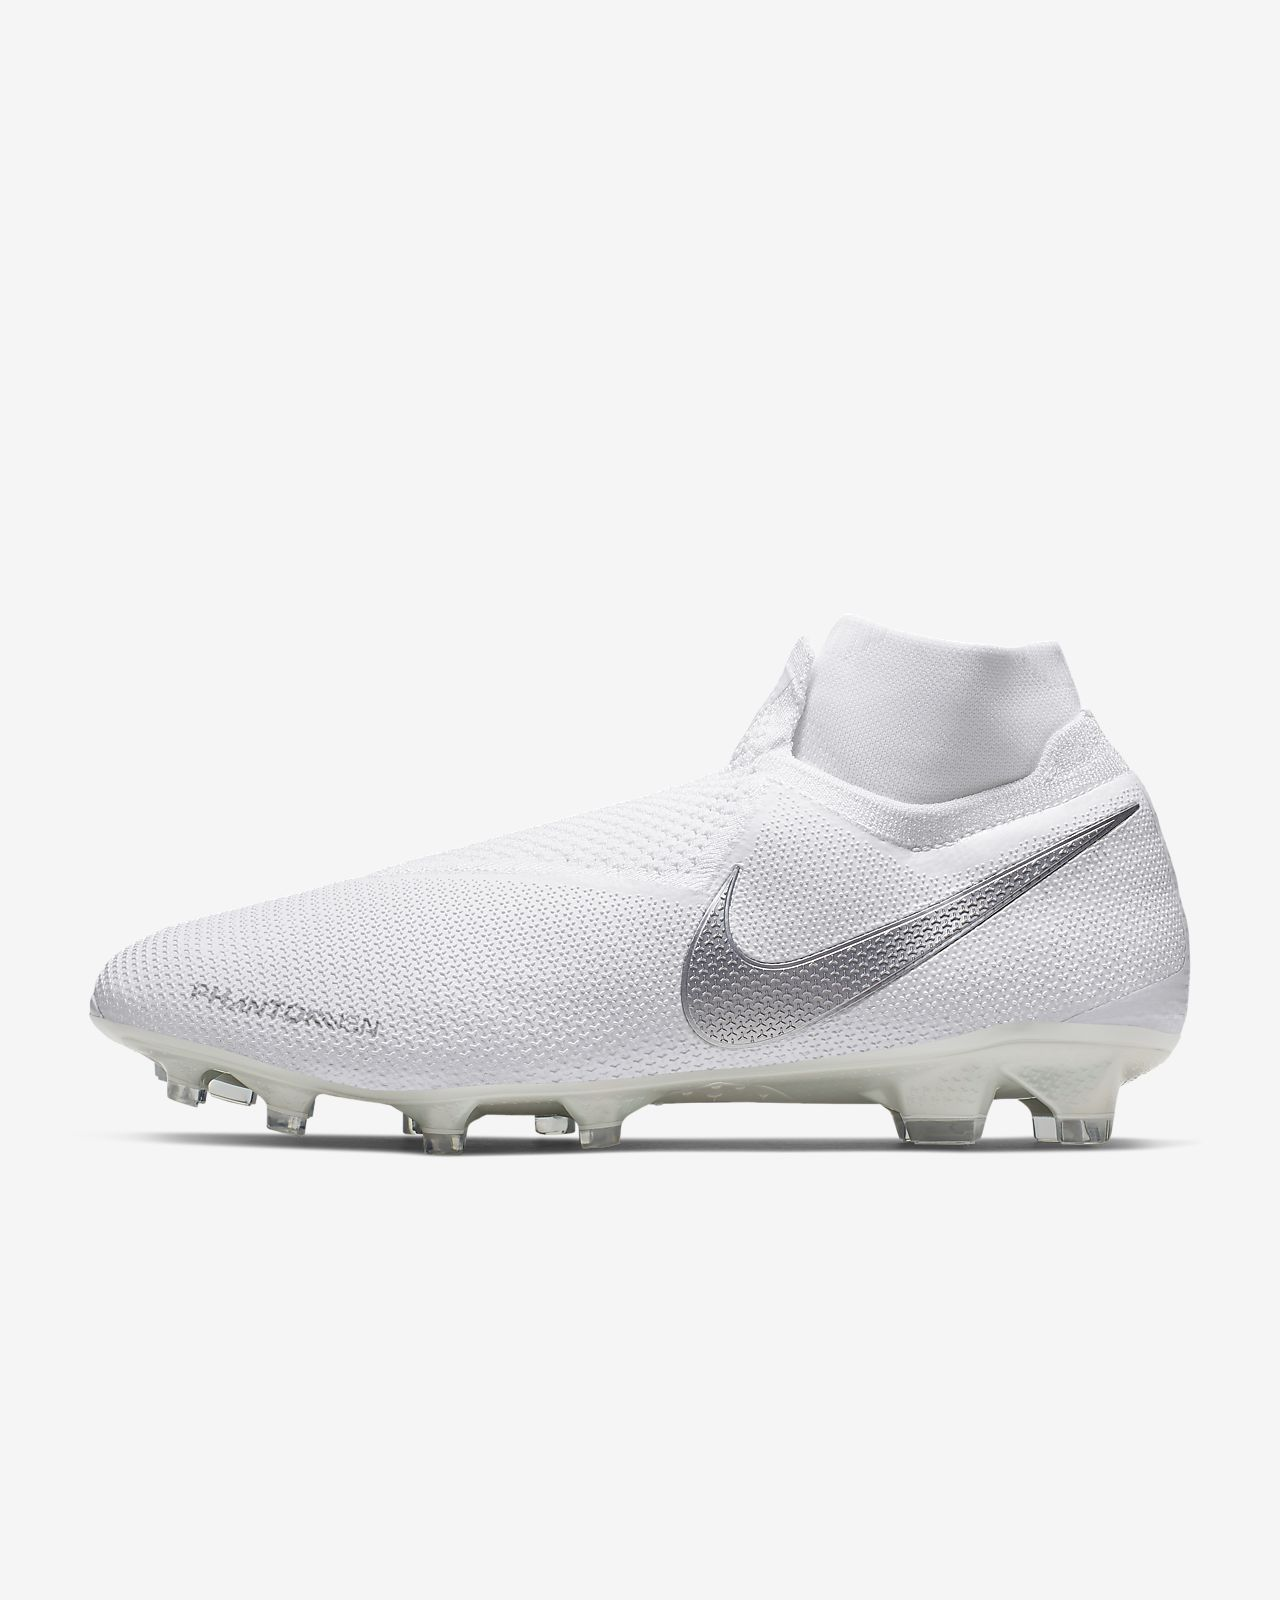 Nike Phantom Vision Elite Dynamic Fit Fg Nuovo White White Metallic Platinum White Phantom Vision Nike Nike Flyknit